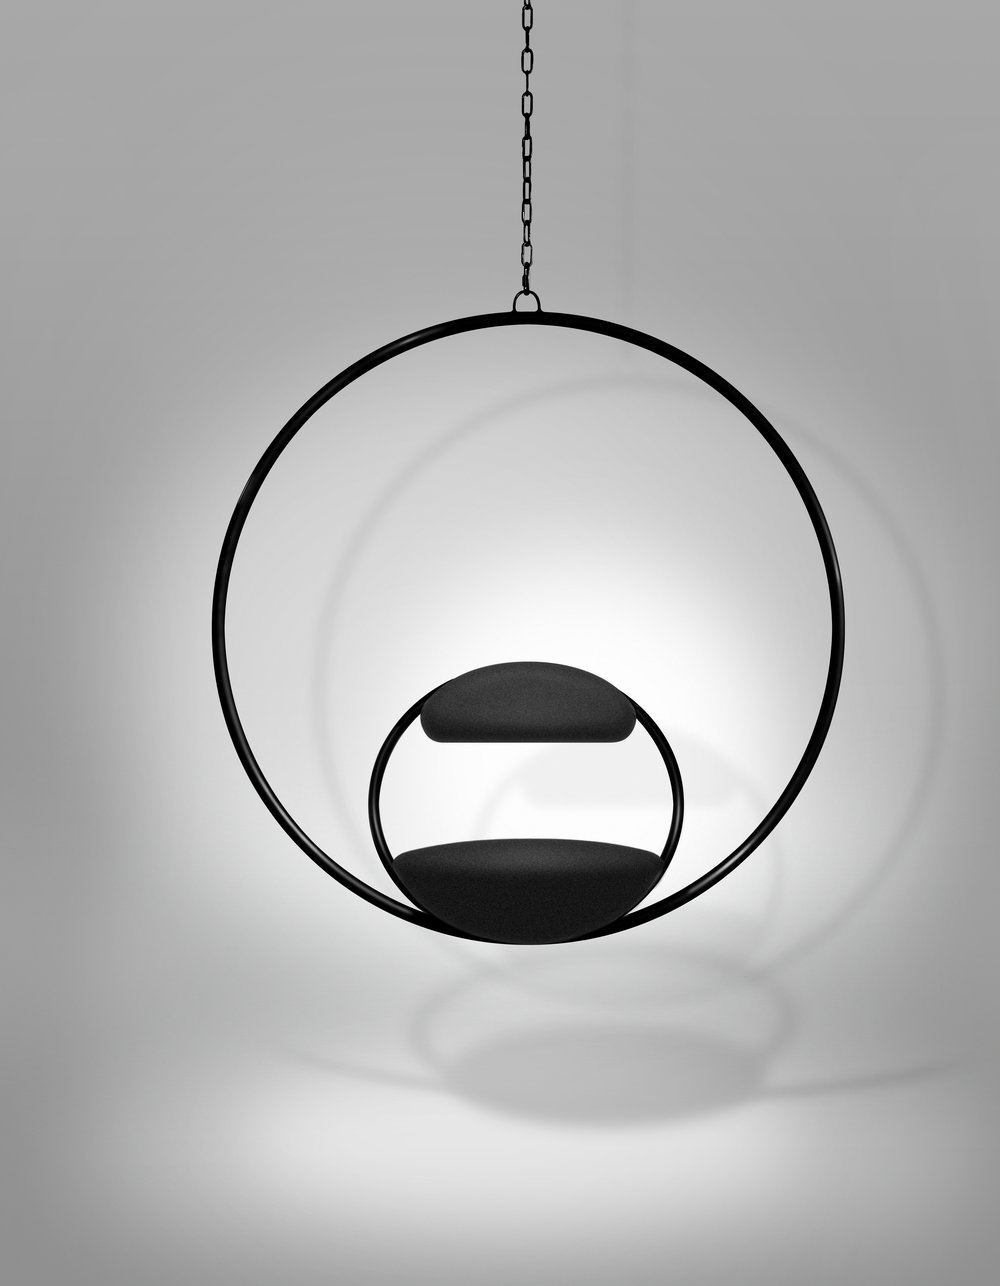 Hanging Hoop Chair Black.jpg